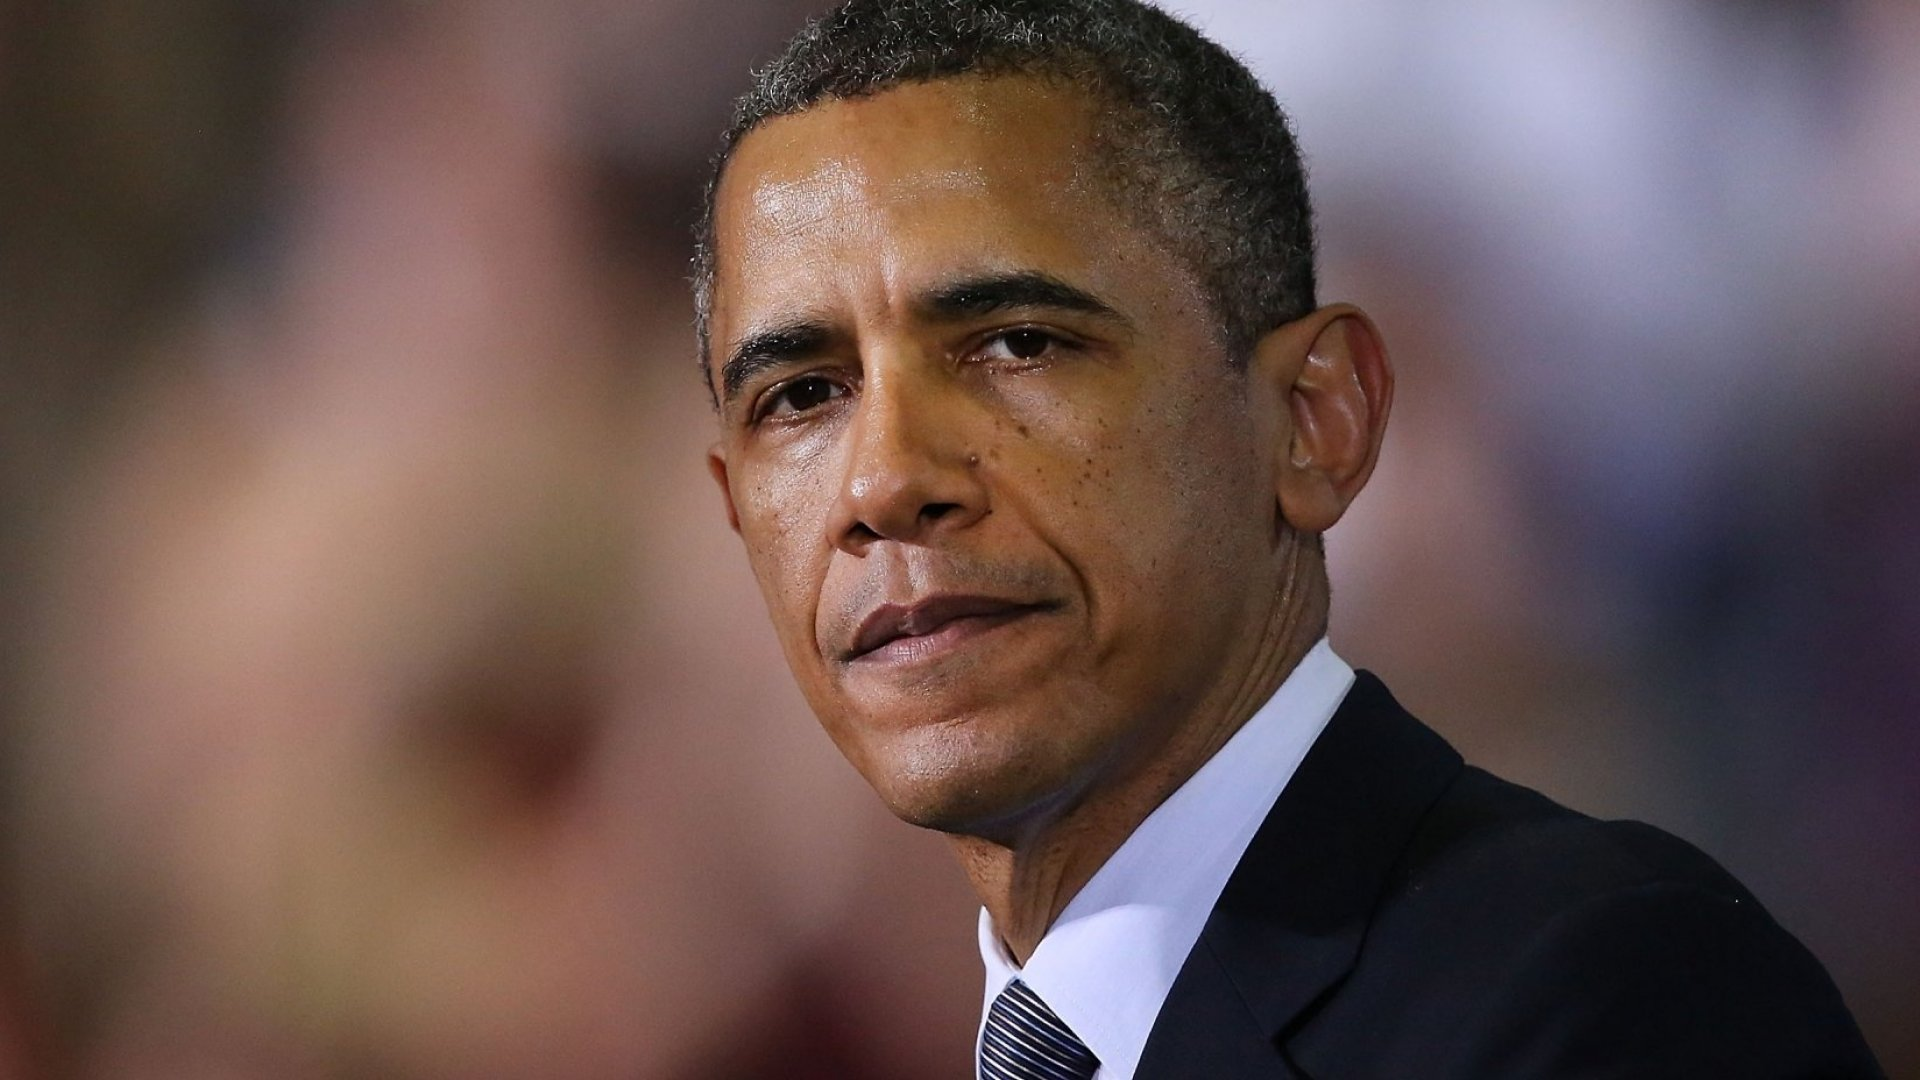 Congress Sends Health Law Repeal to Obama for First Time